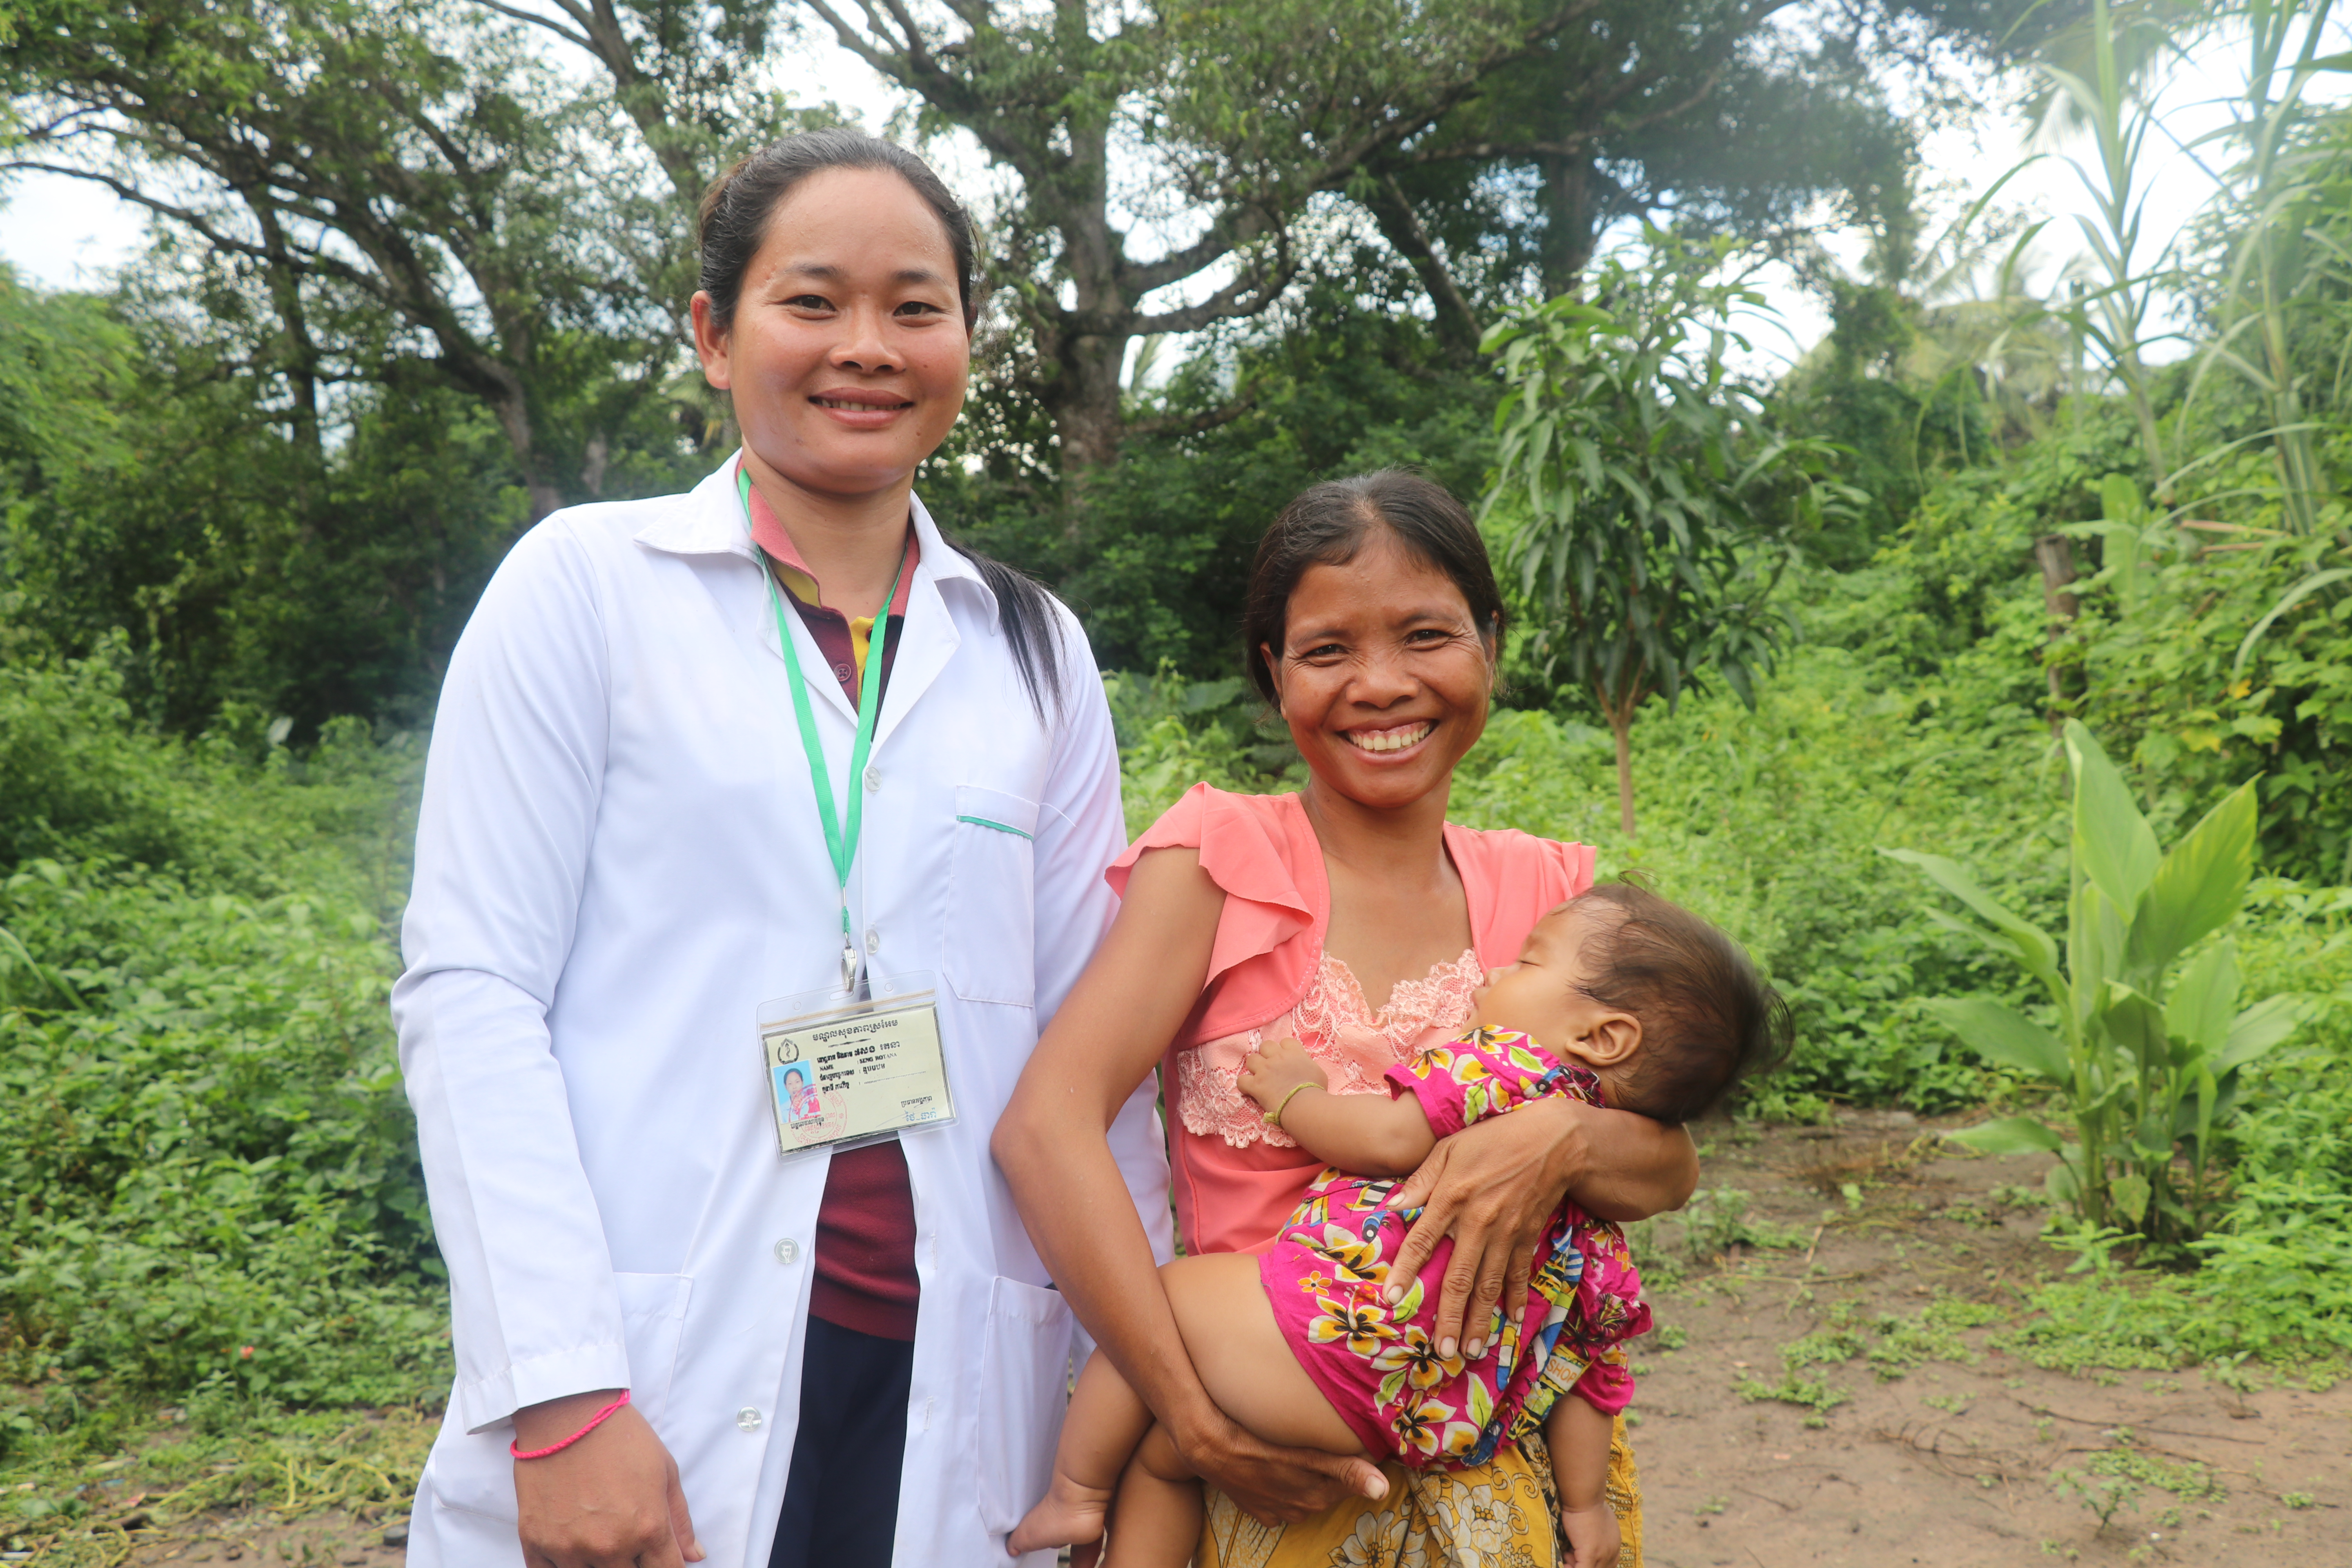 Ratna visits Bora regularly at her home to give advice on health-related care and emotional support